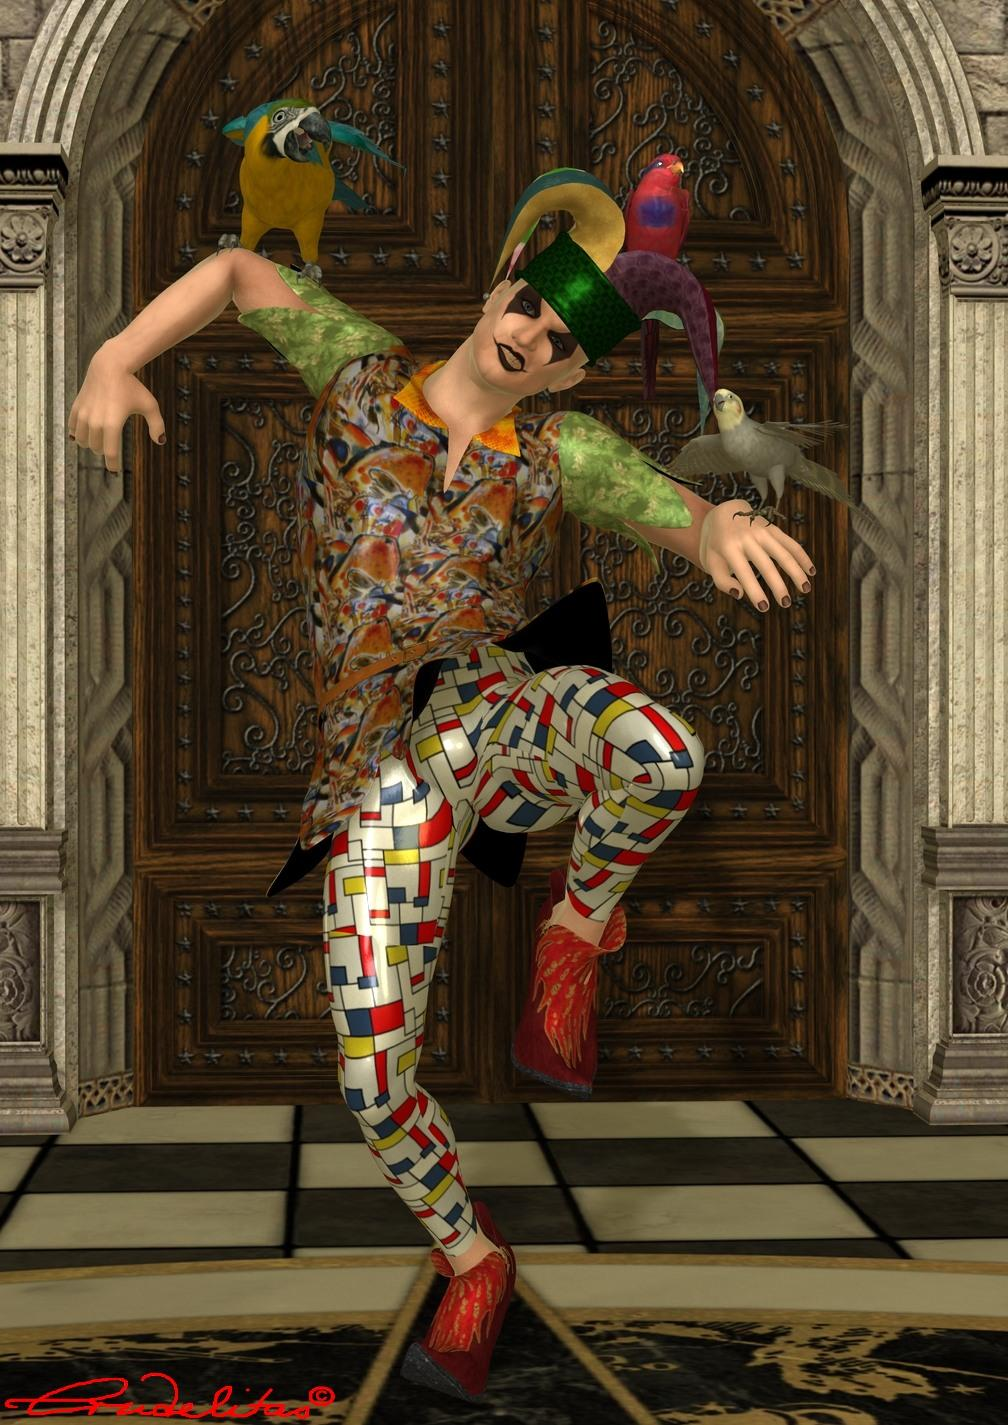 The Jester by Crudelitas